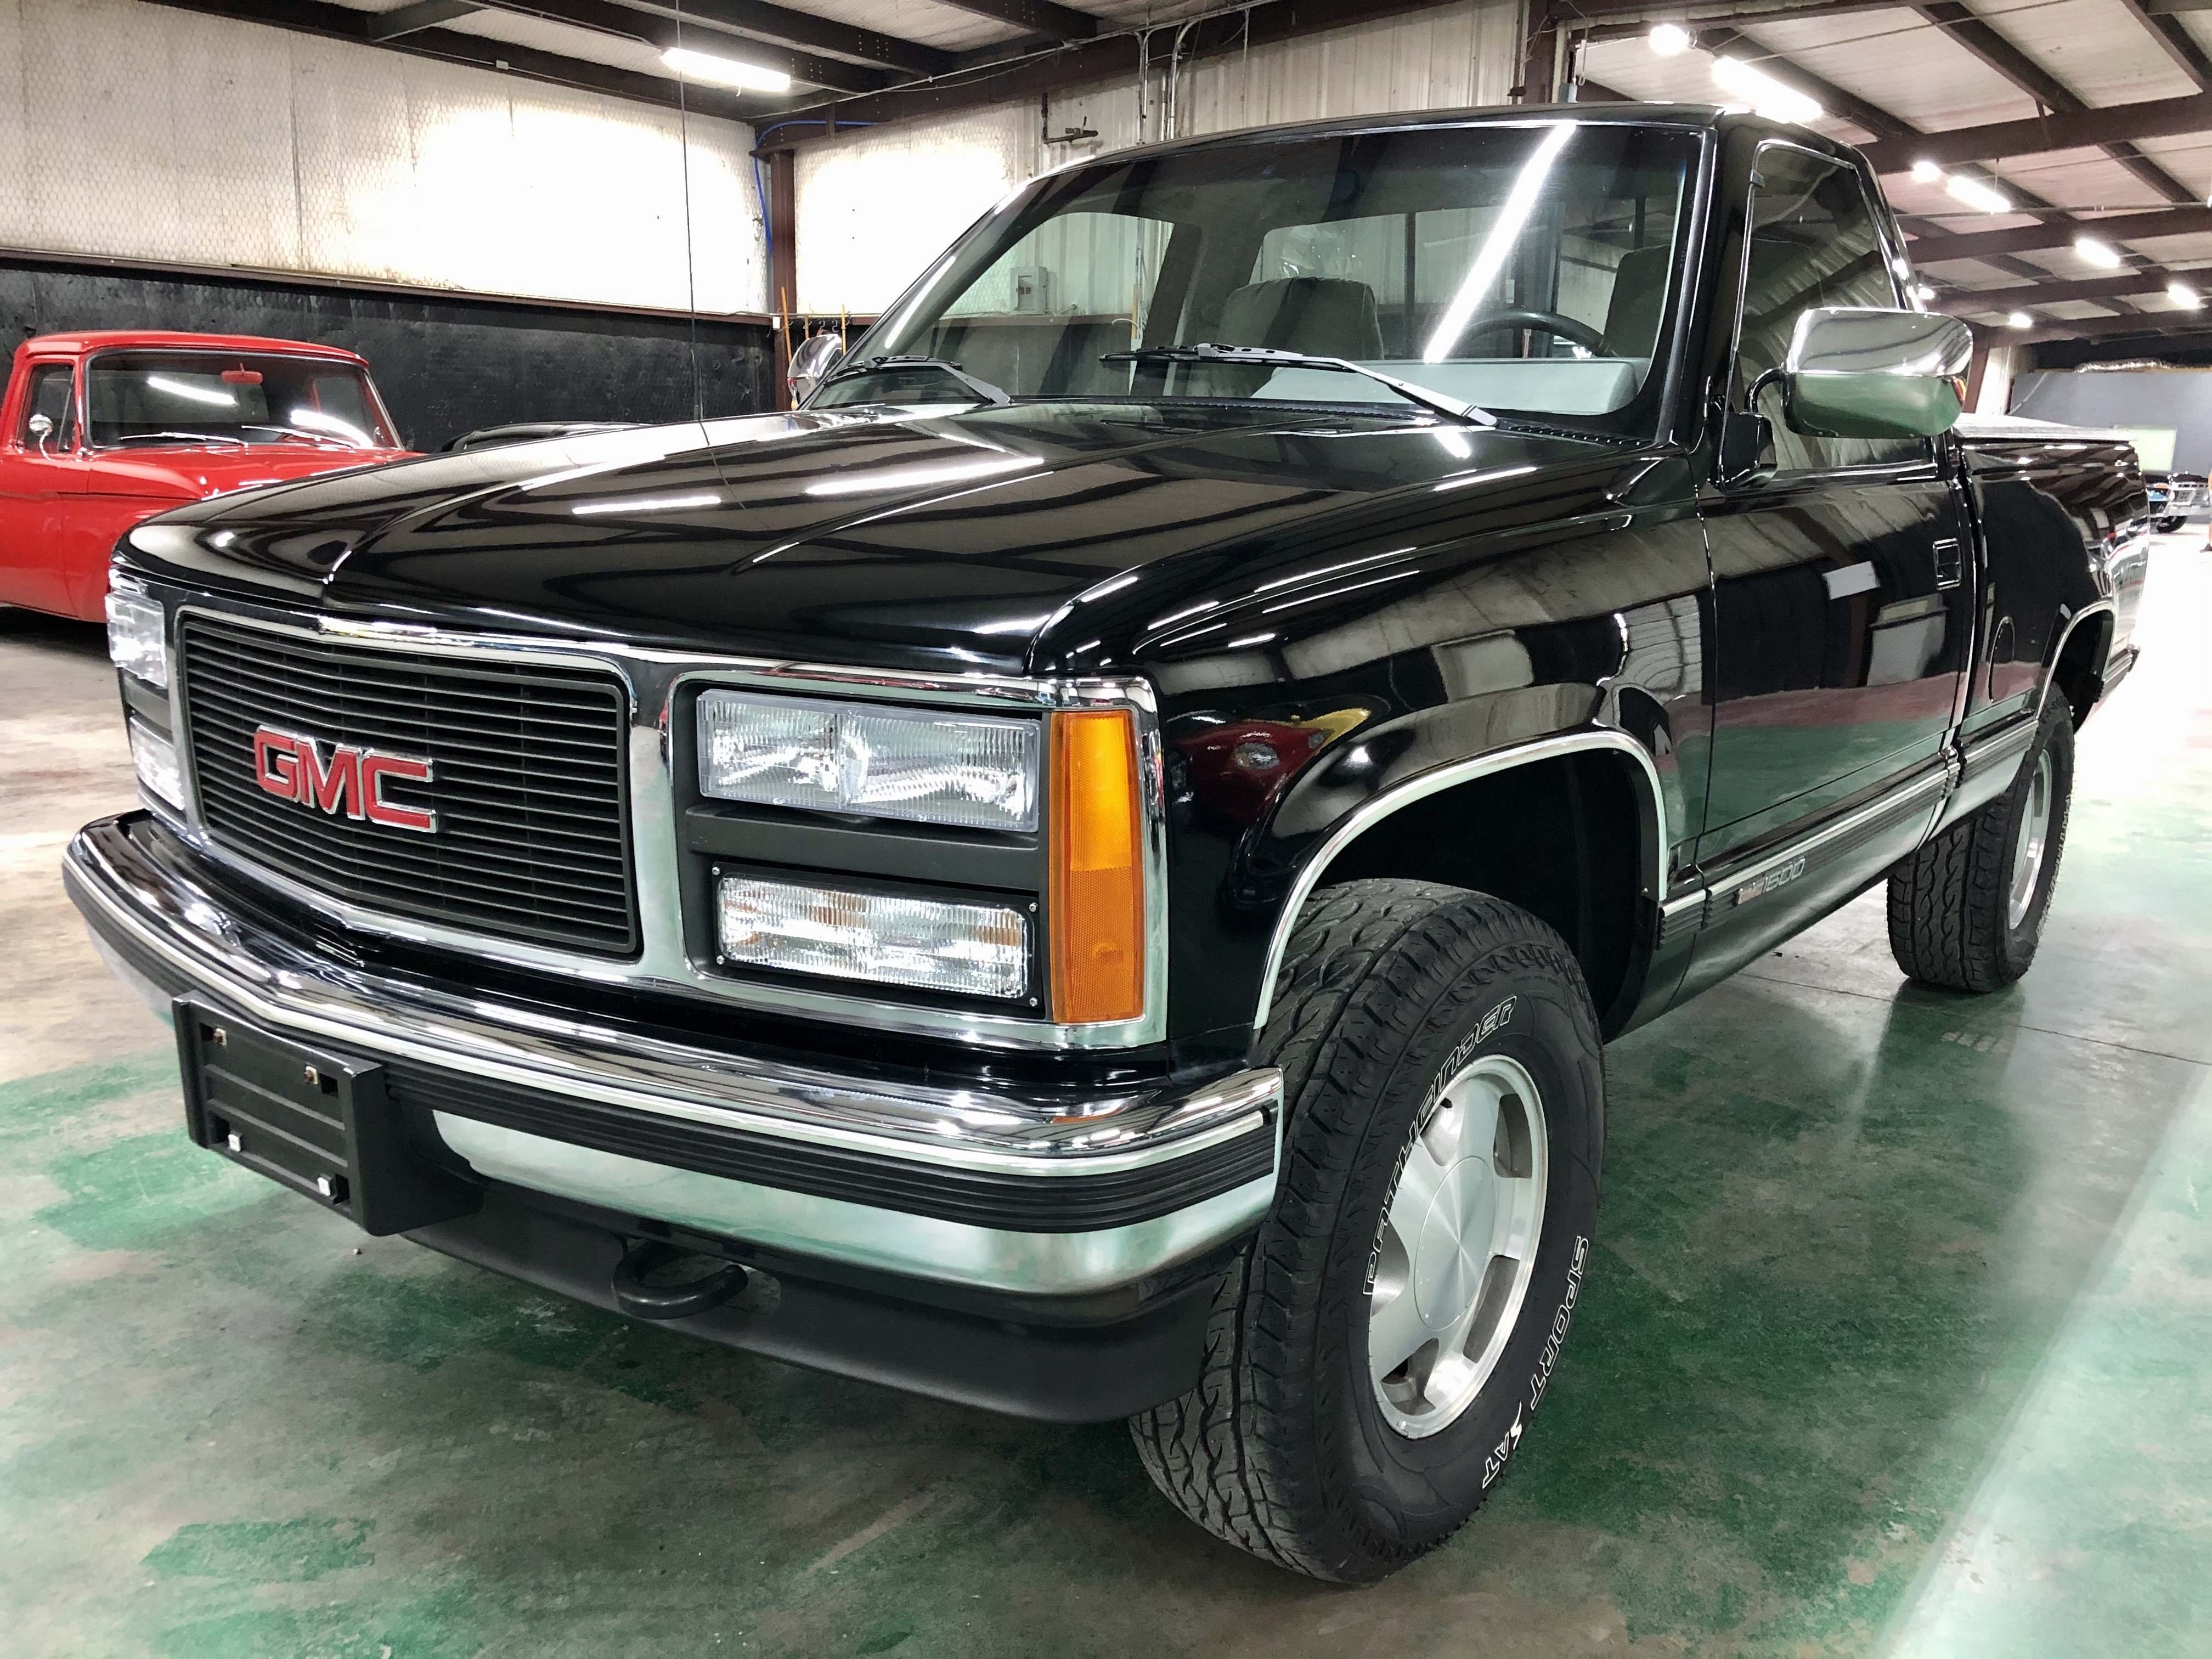 1992 gmc sierra 1500 4x4 regular cab for sale near sherman texas 75092 classics on autotrader 1992 gmc sierra 1500 4x4 regular cab for sale near sherman texas 75092 classics on autotrader